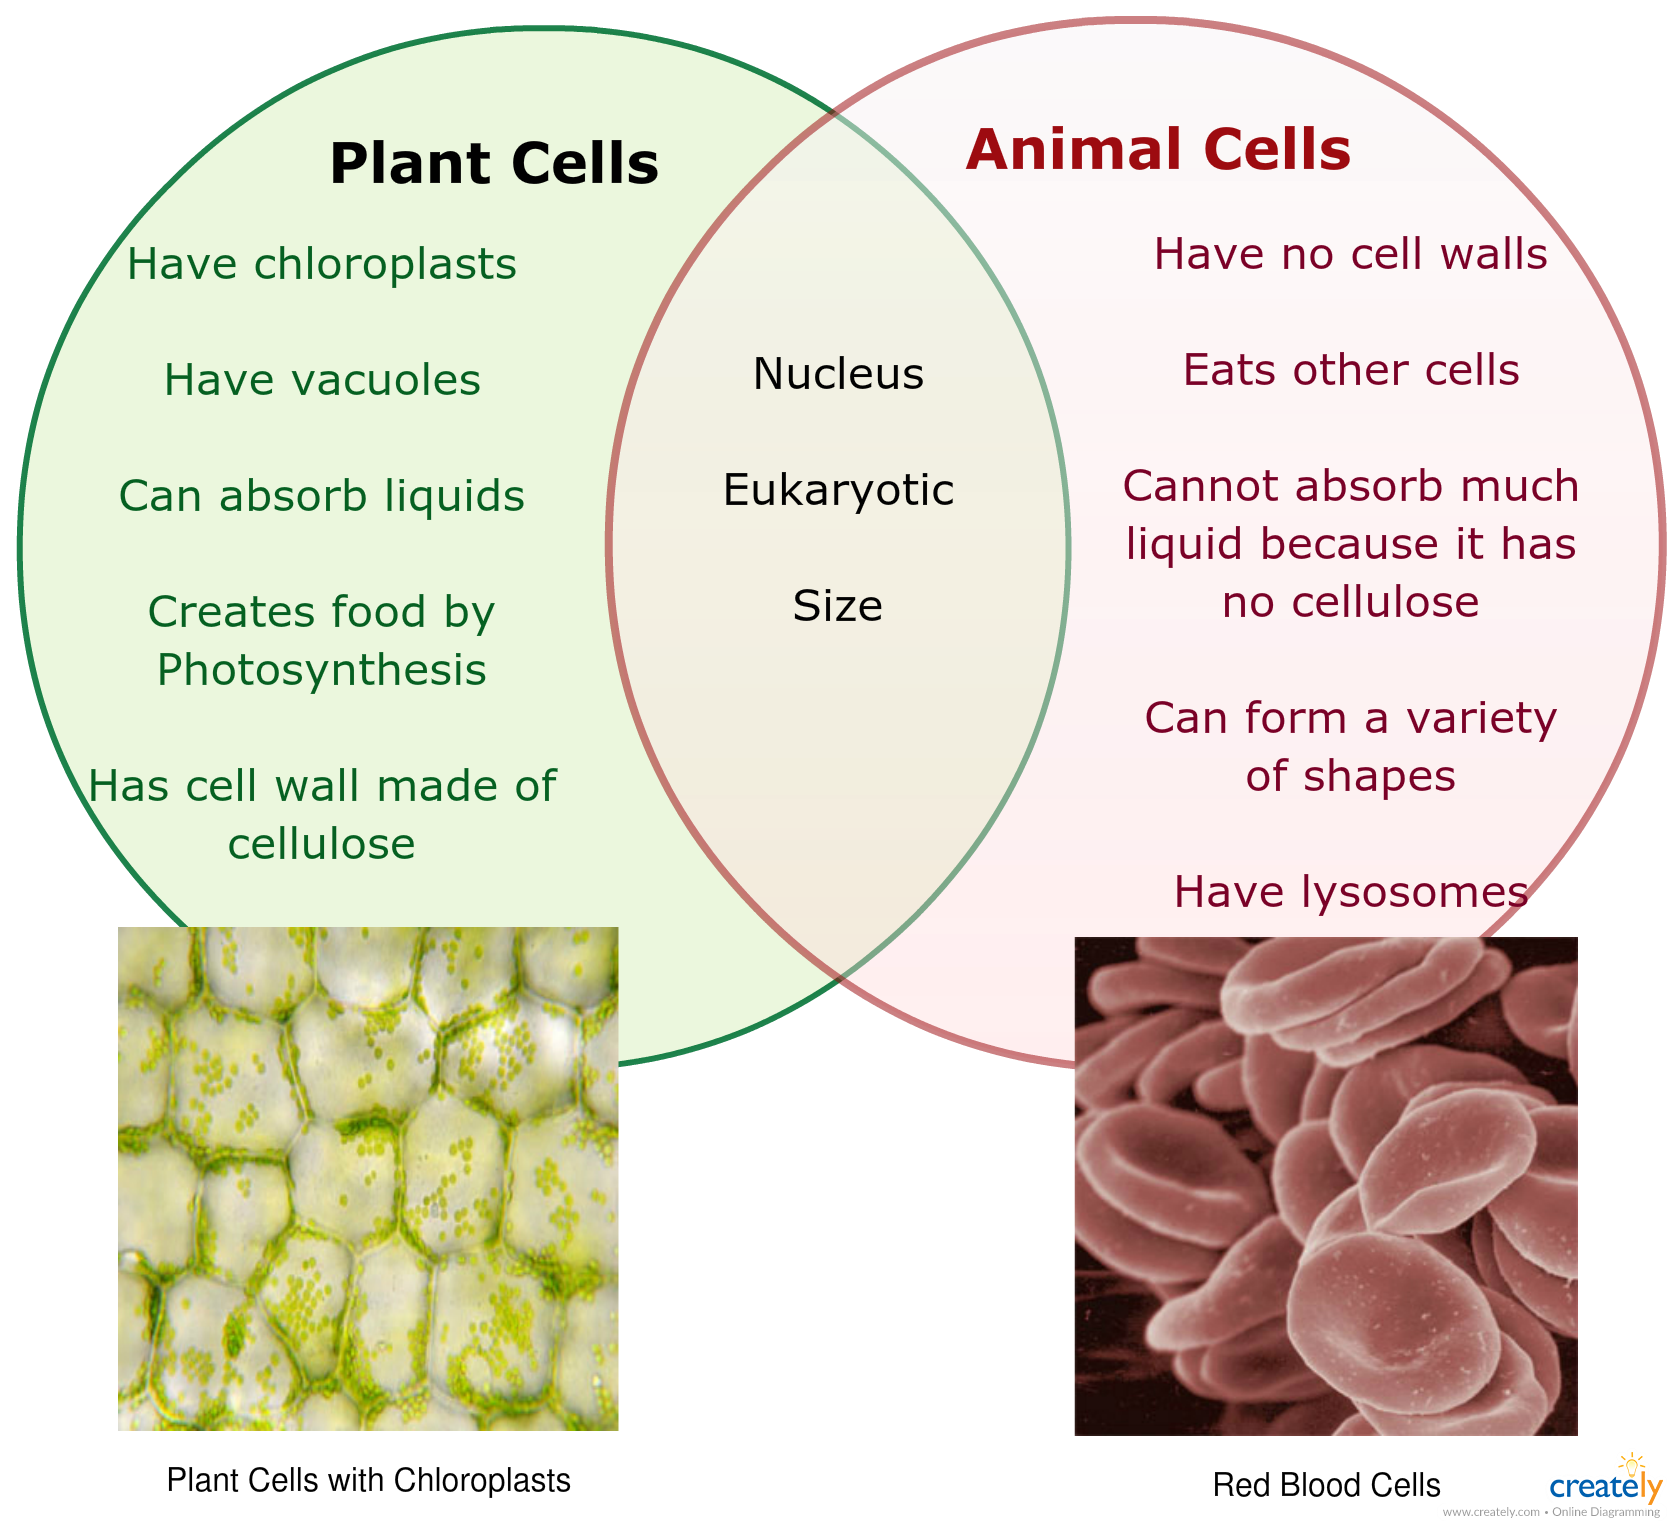 Image result for plant and animal cell venn diagram cells cells image result for plant and animal cell venn diagram ccuart Images